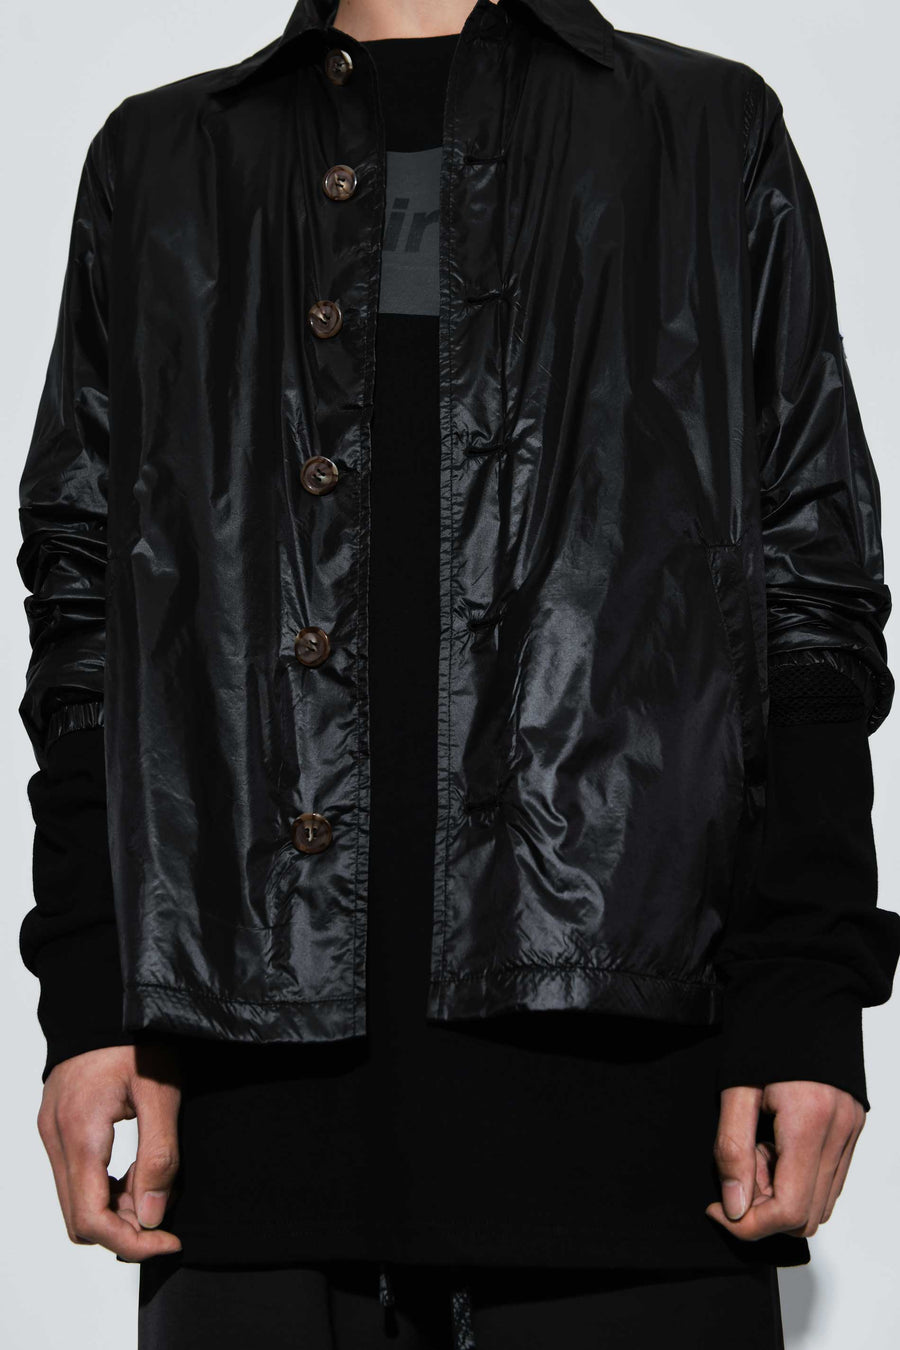 Rainfall Shirt Jacket Black